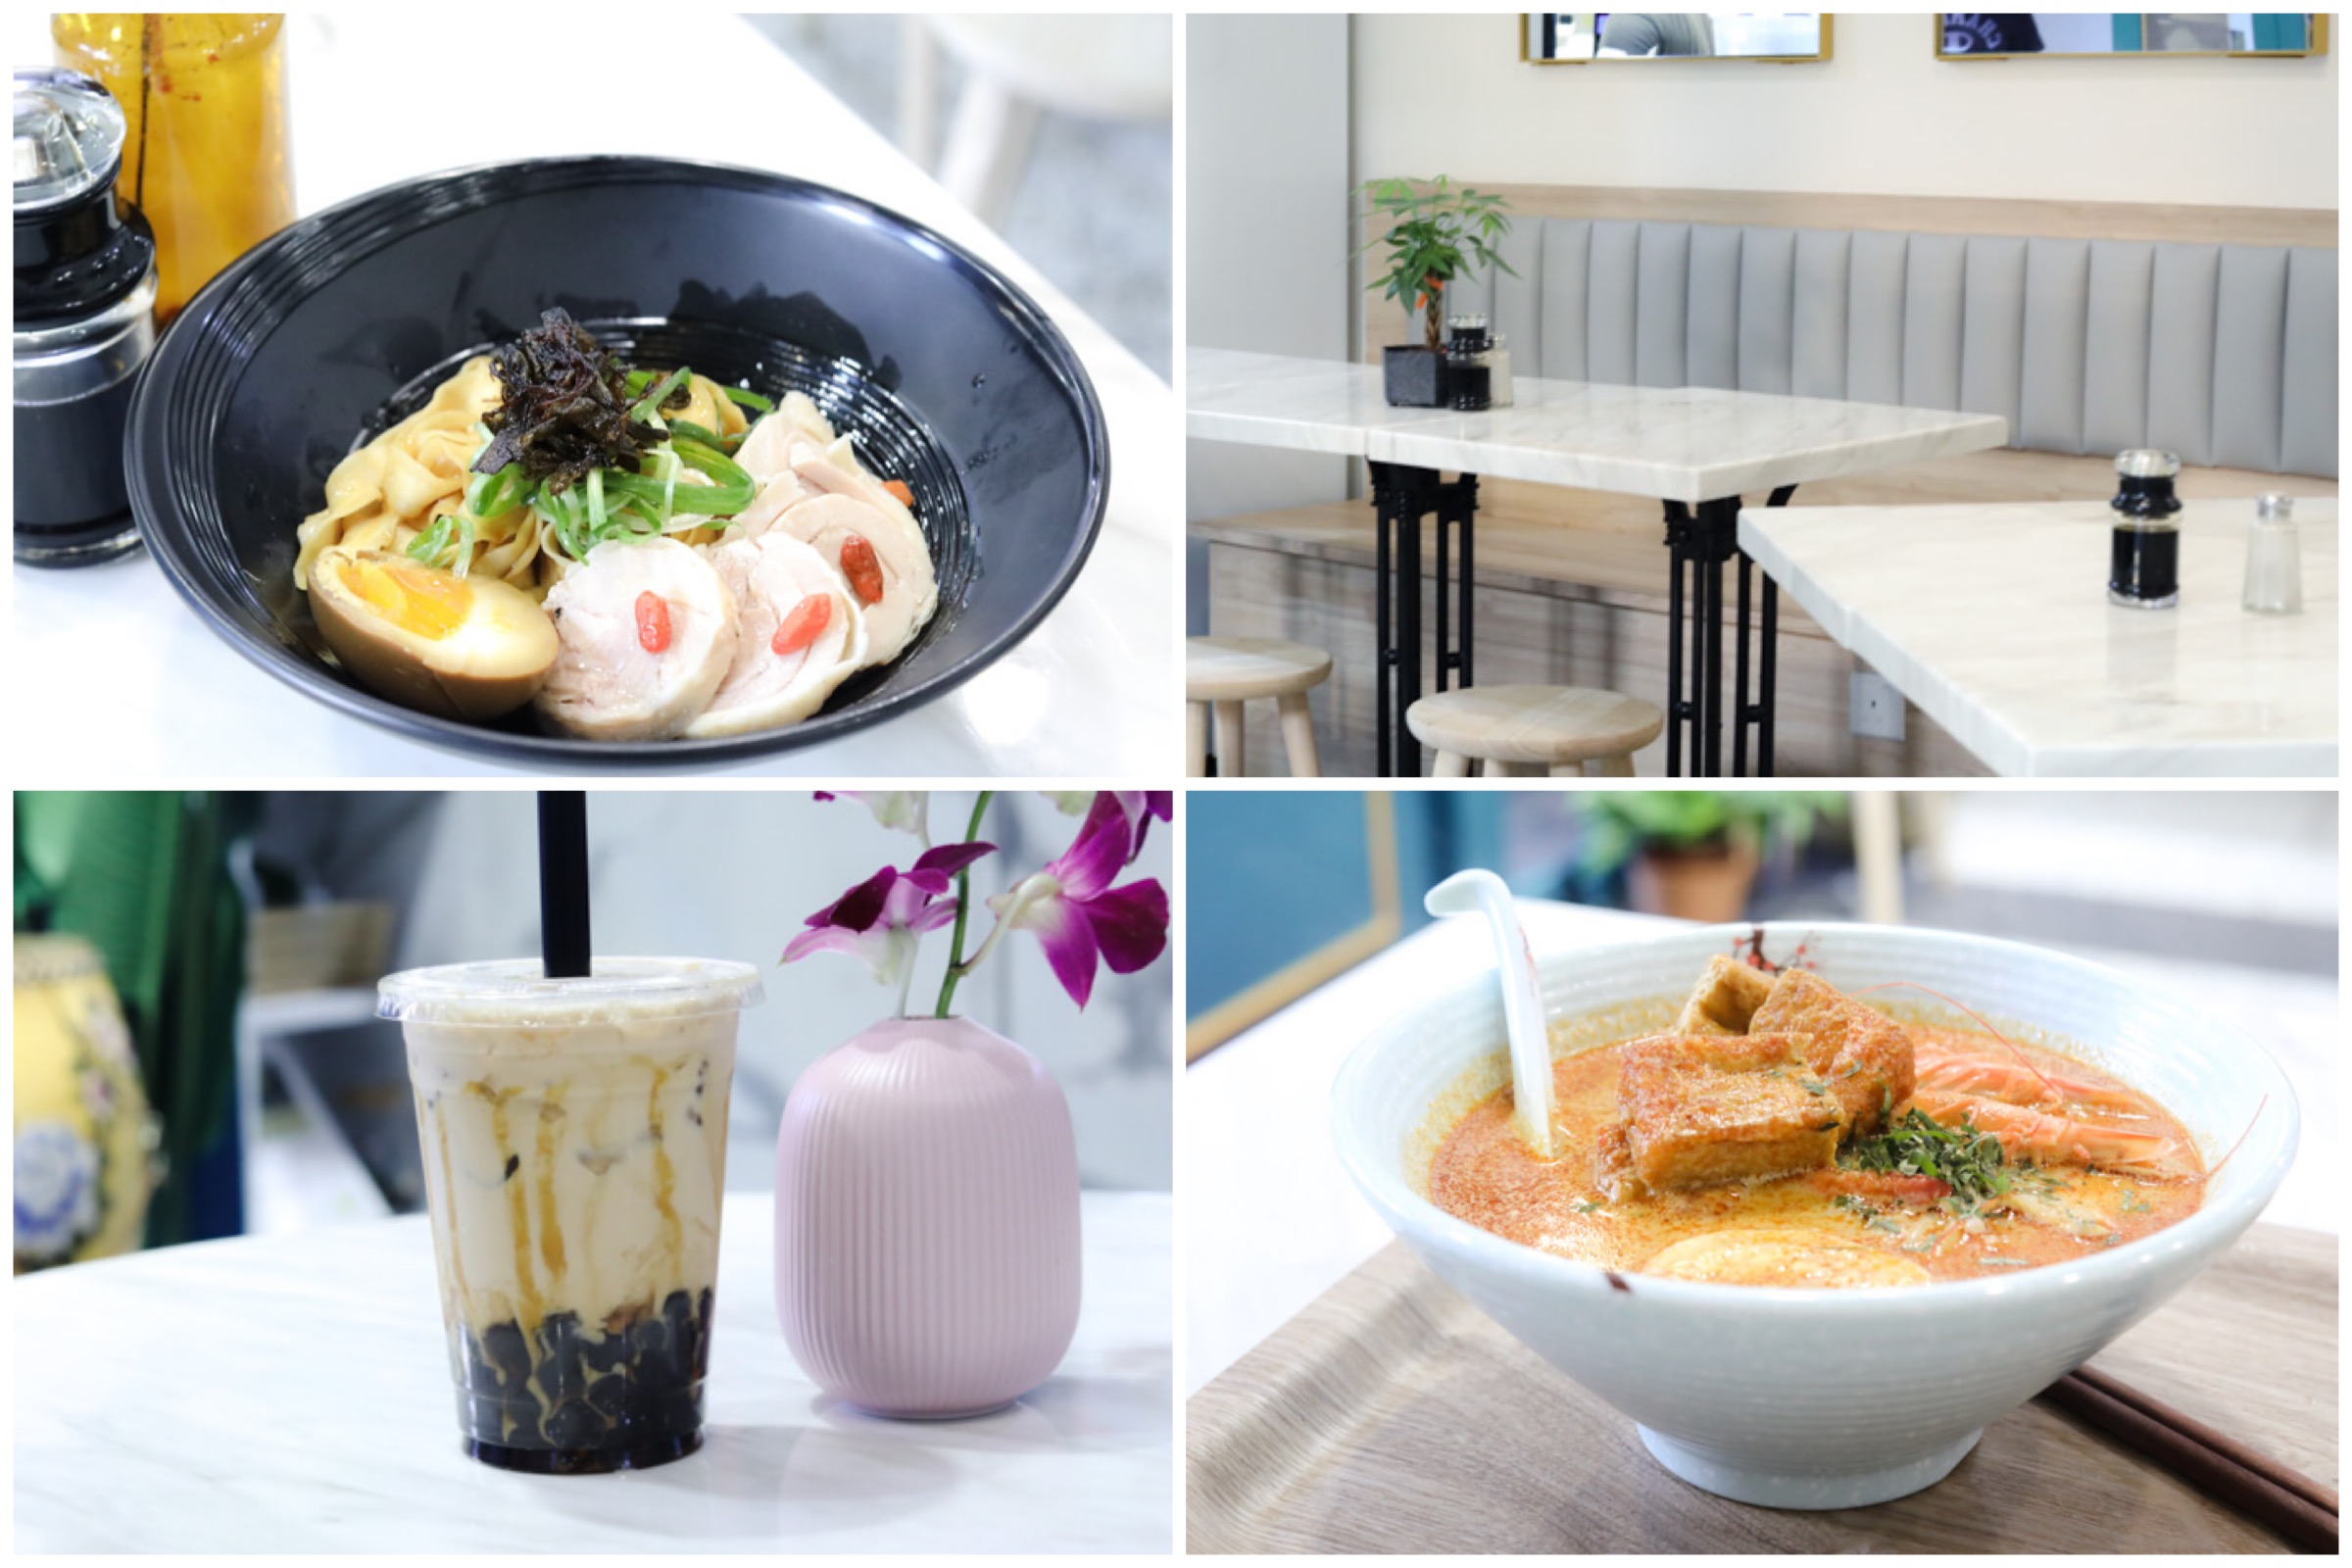 Brown Sugar Café - Brown Sugar Milk Tea Cafe Serving Truffle Drunken Chicken Noodles, At Balestier Road